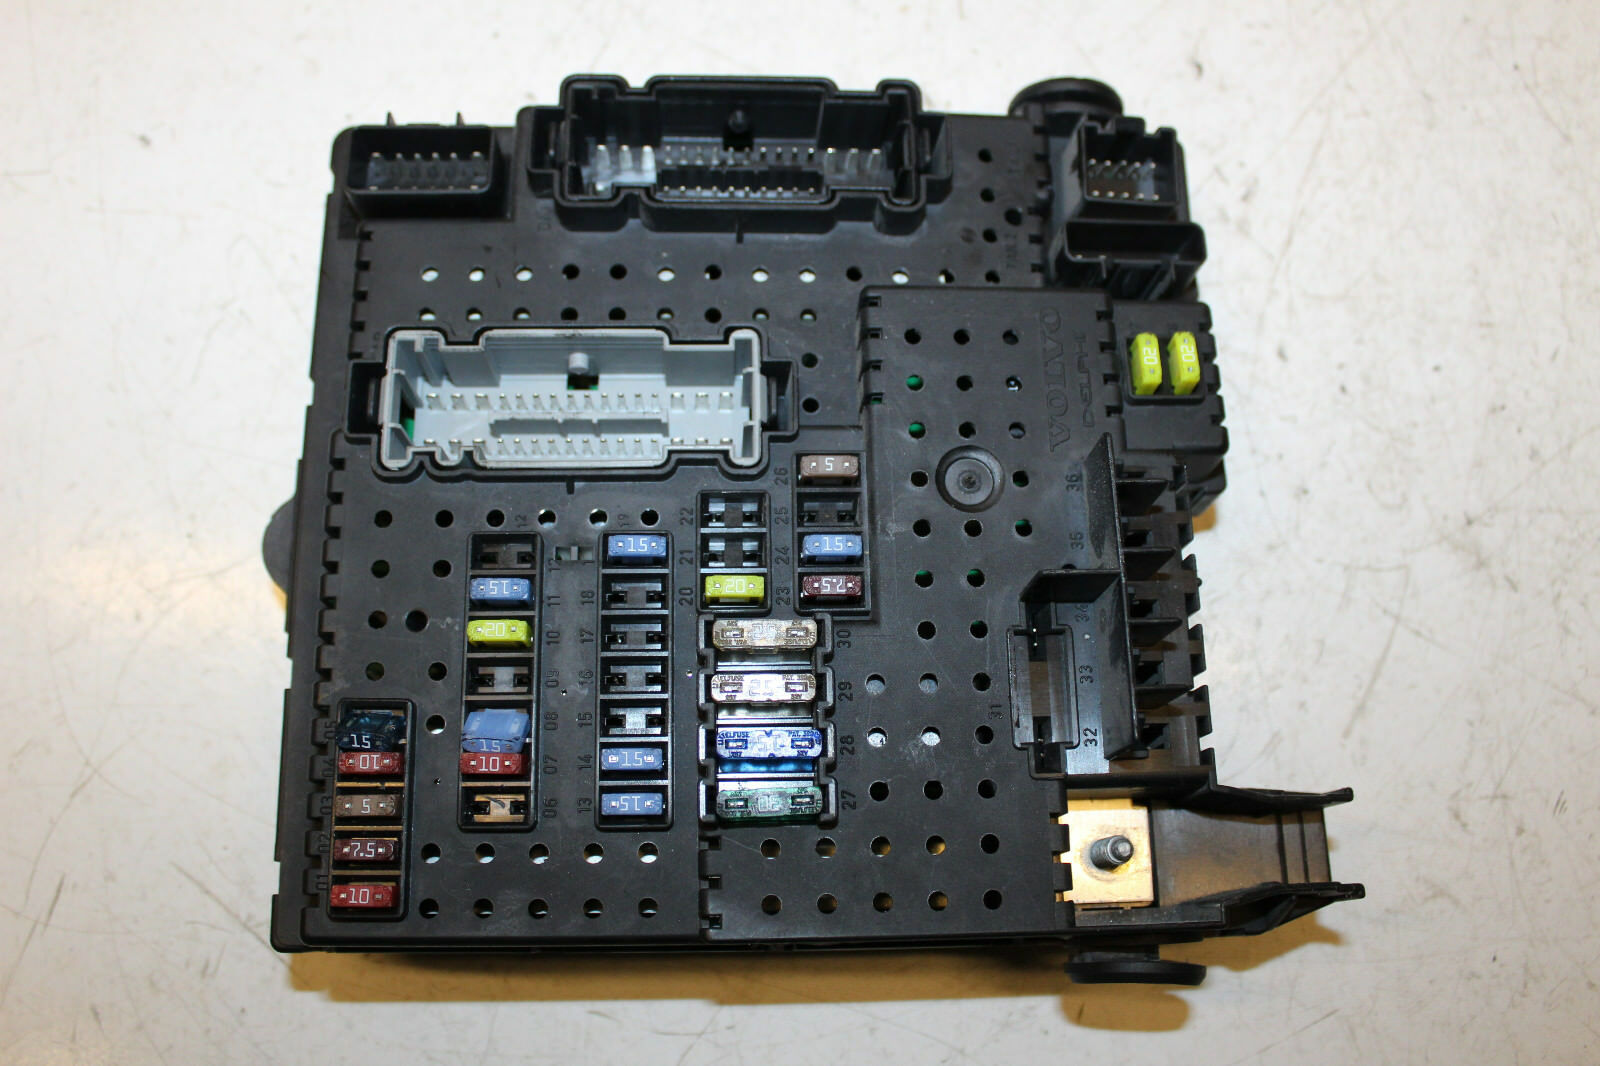 Volvo Xc90 D5 24 2004 Rear Fuse Box 31314981 30786646 4982 In 1 Of 3only Available